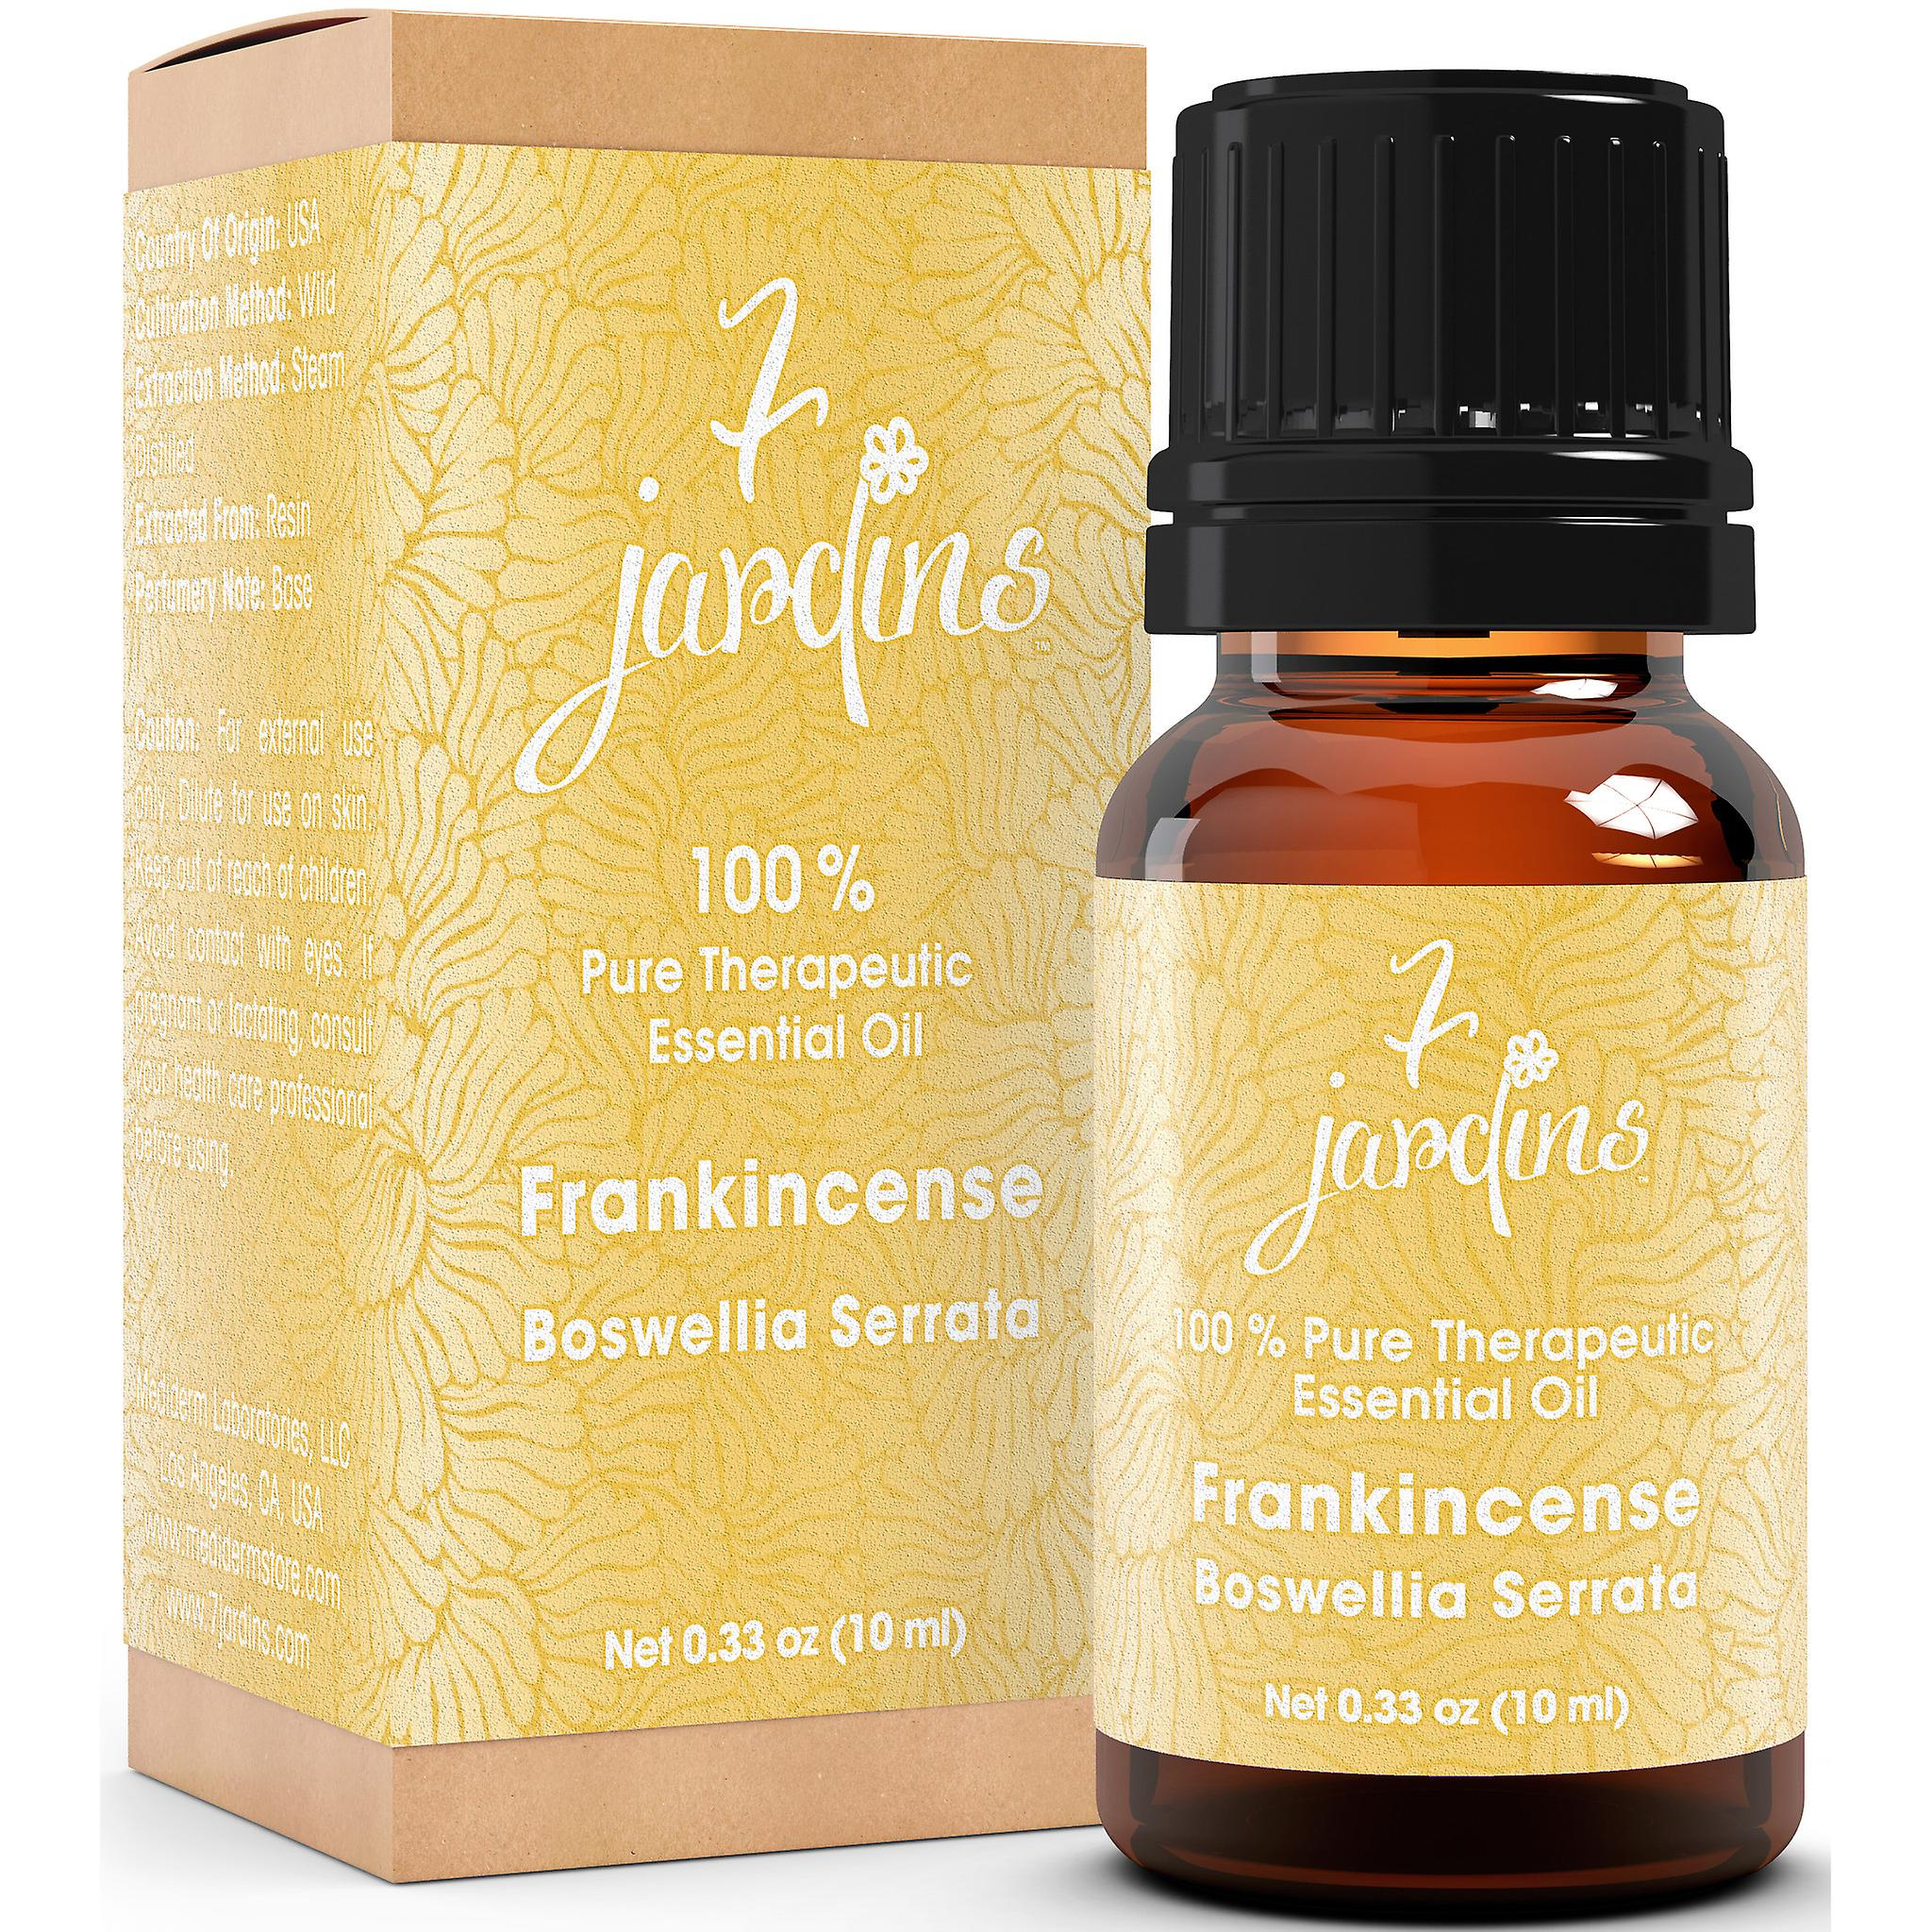 7 Jardins Premium Frankincense 100% Pure & Natural Therapeutic Grade Essential Oil. Olibanum 10 ml - For Aromatherapy, Anti Aging, Reducing Inflammation, Arthritic Pain & Scar Tissue